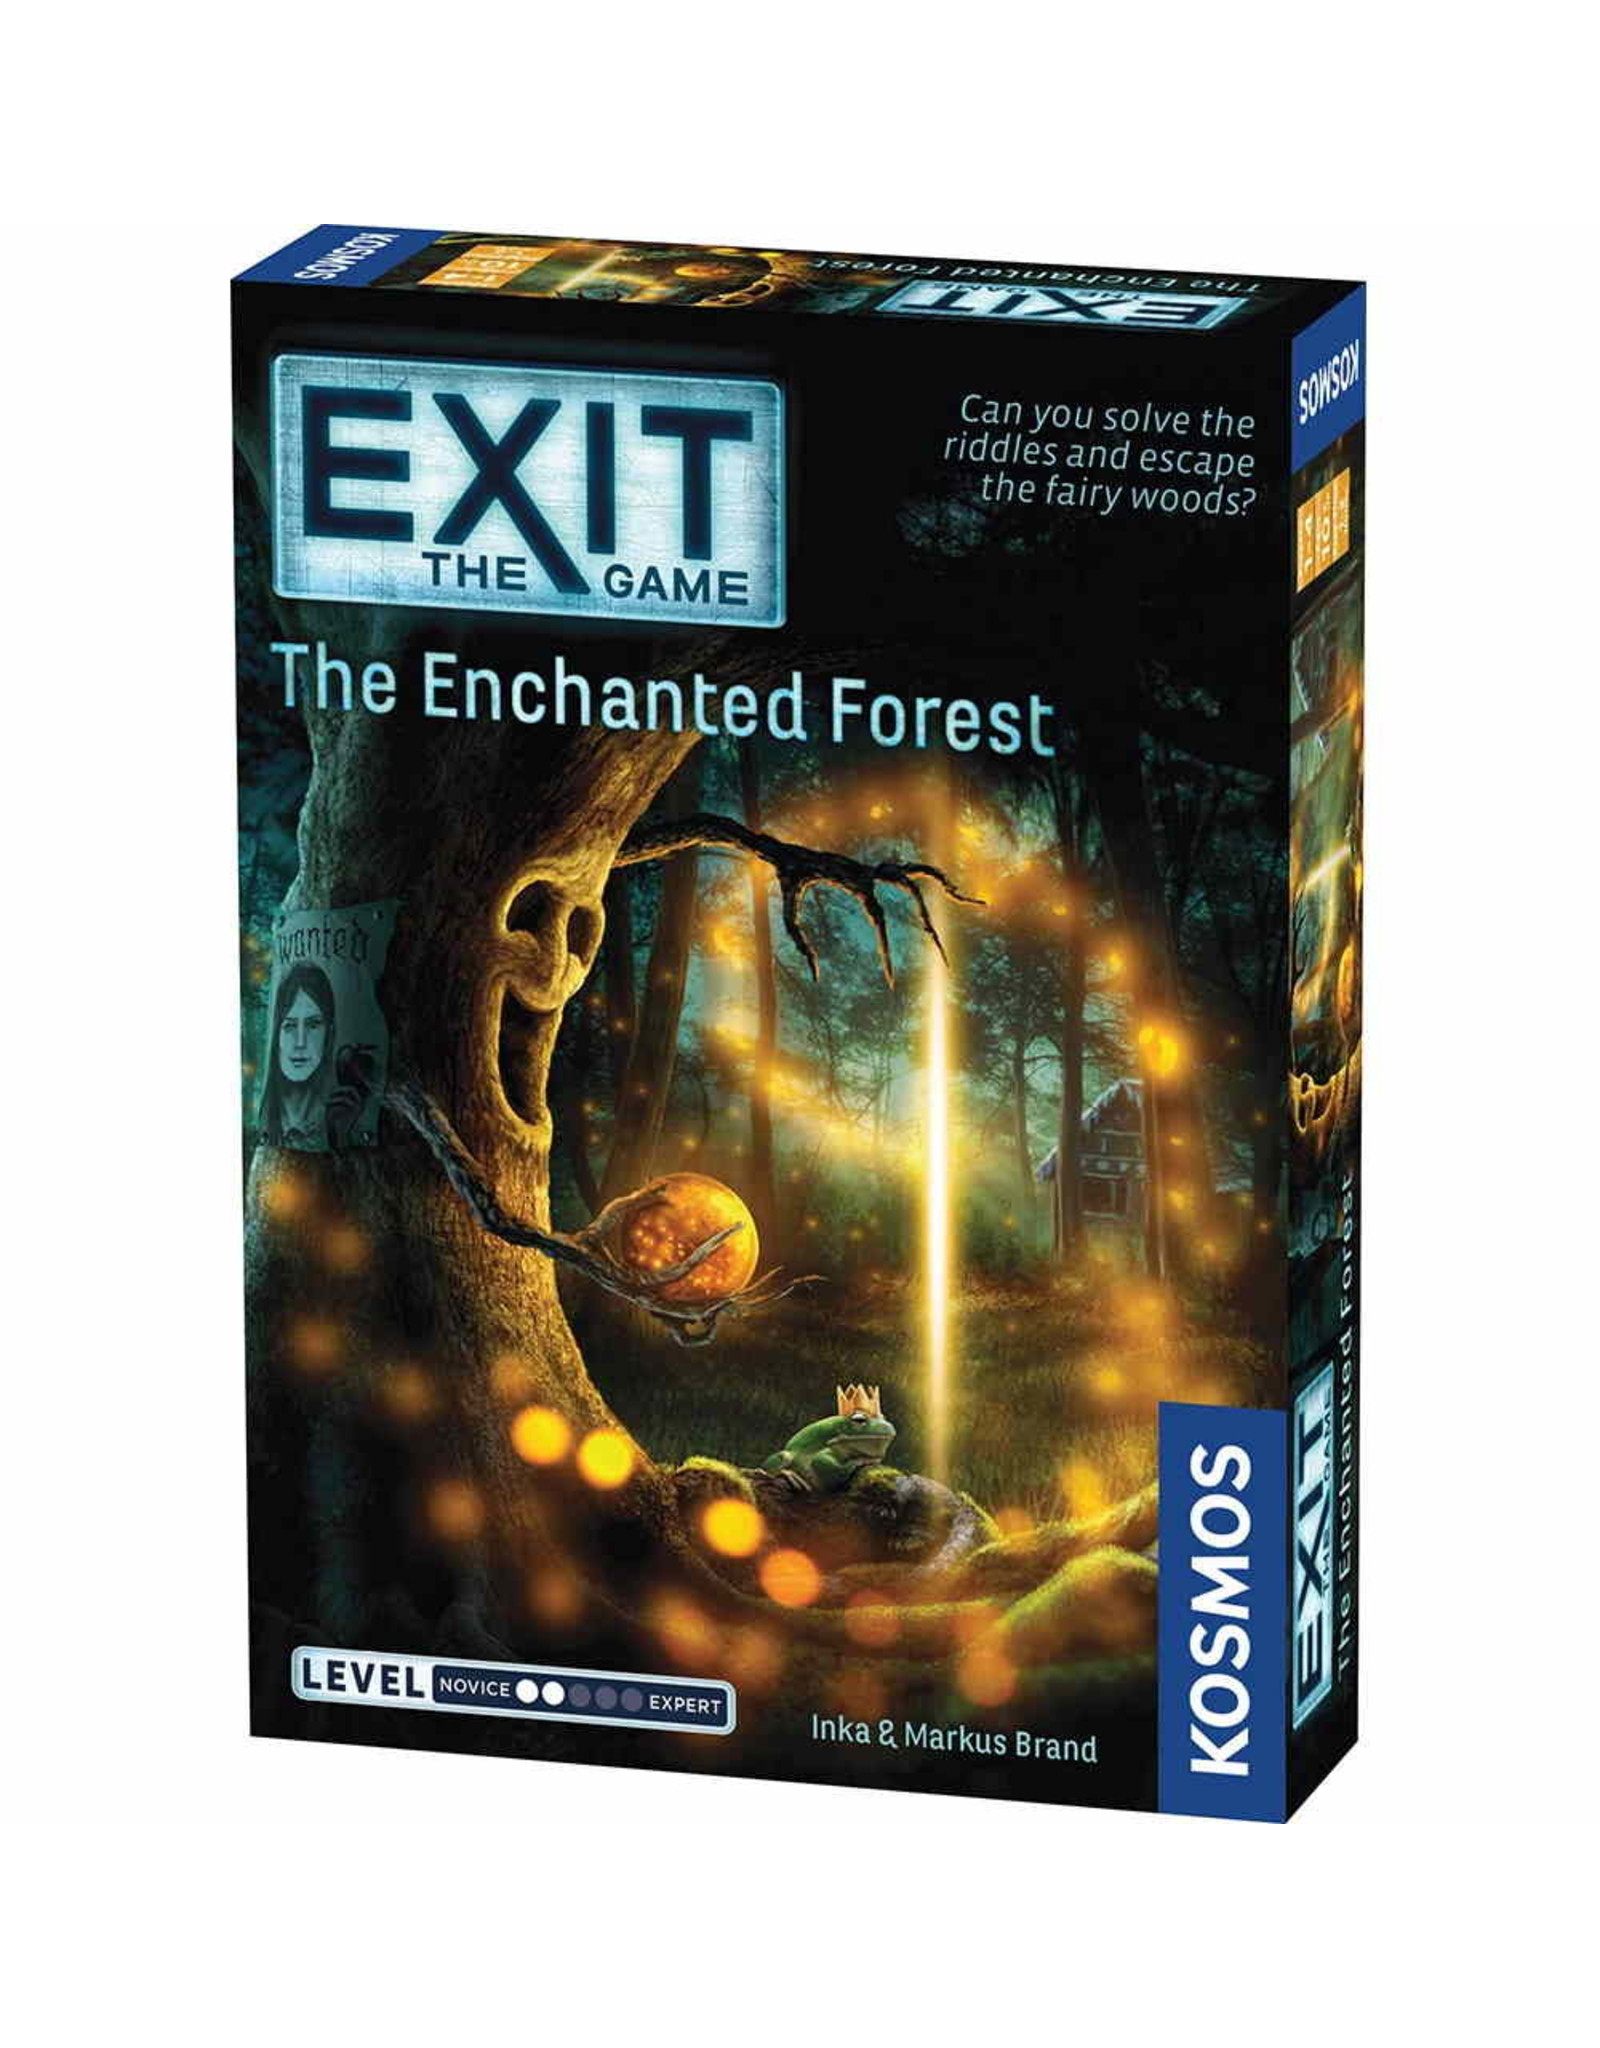 EXIT THE GAME THE ENCHANTED FOREST